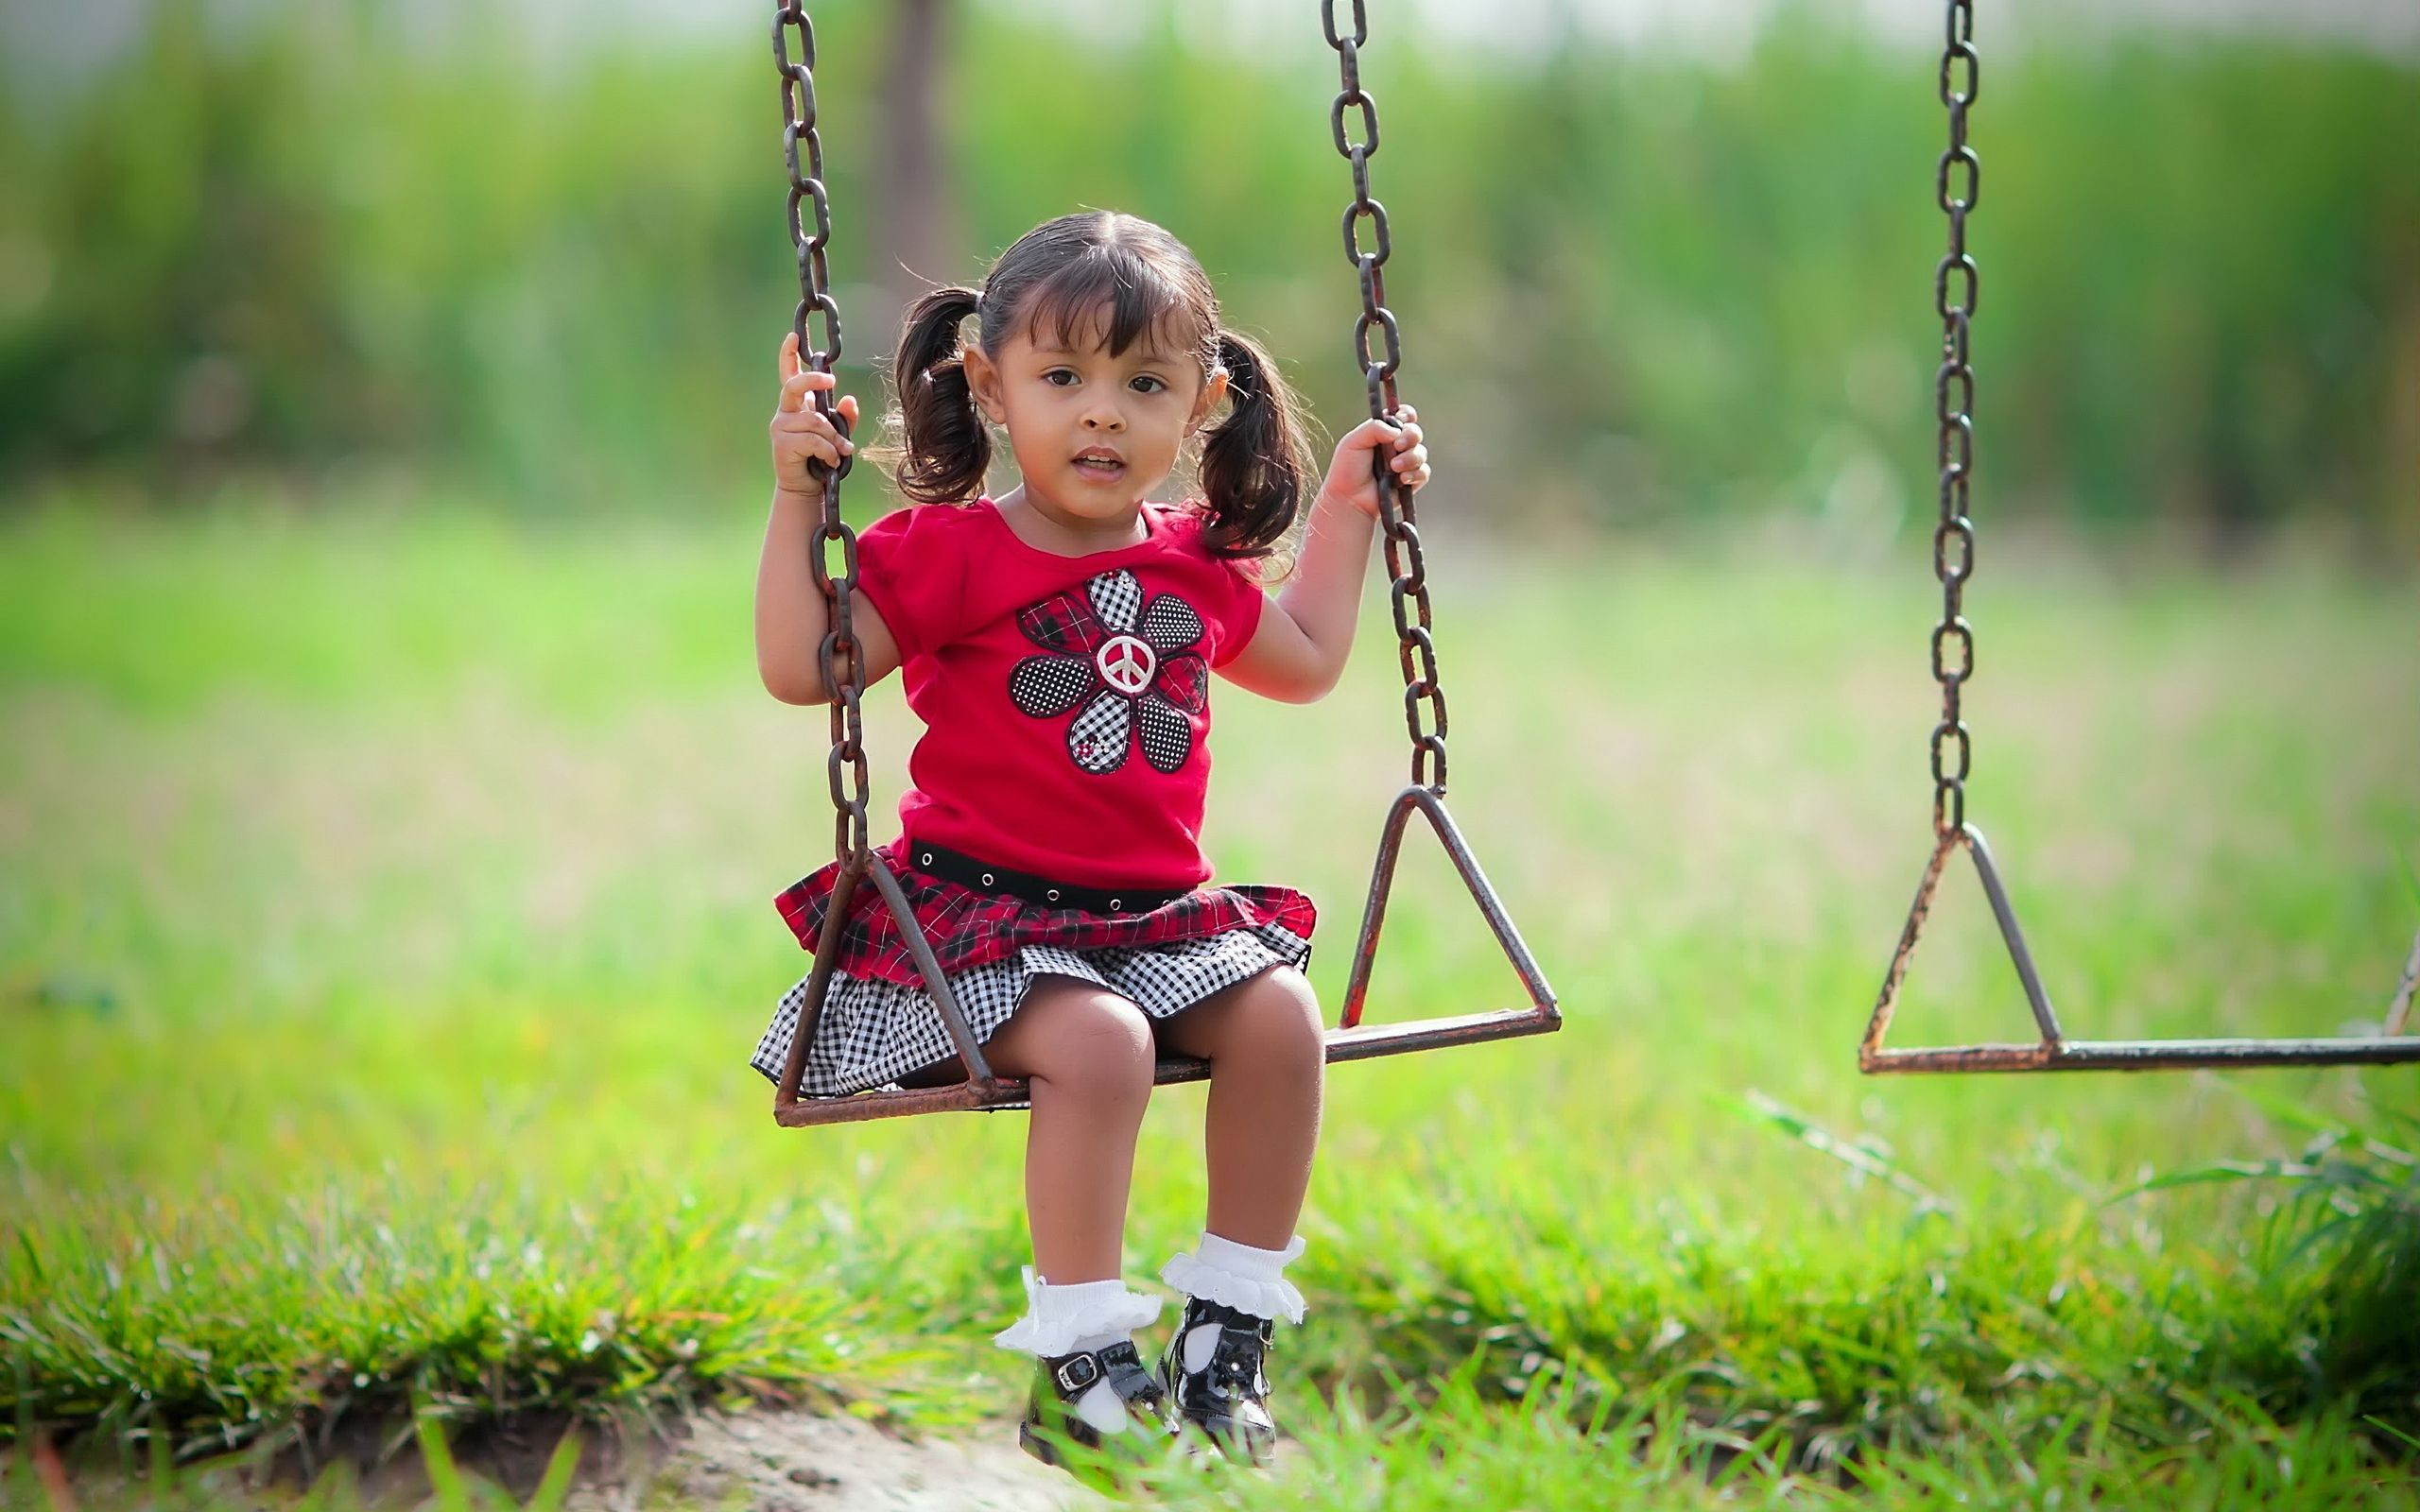 Download Wallpaper 2560x1600 child, girl, swing, mood